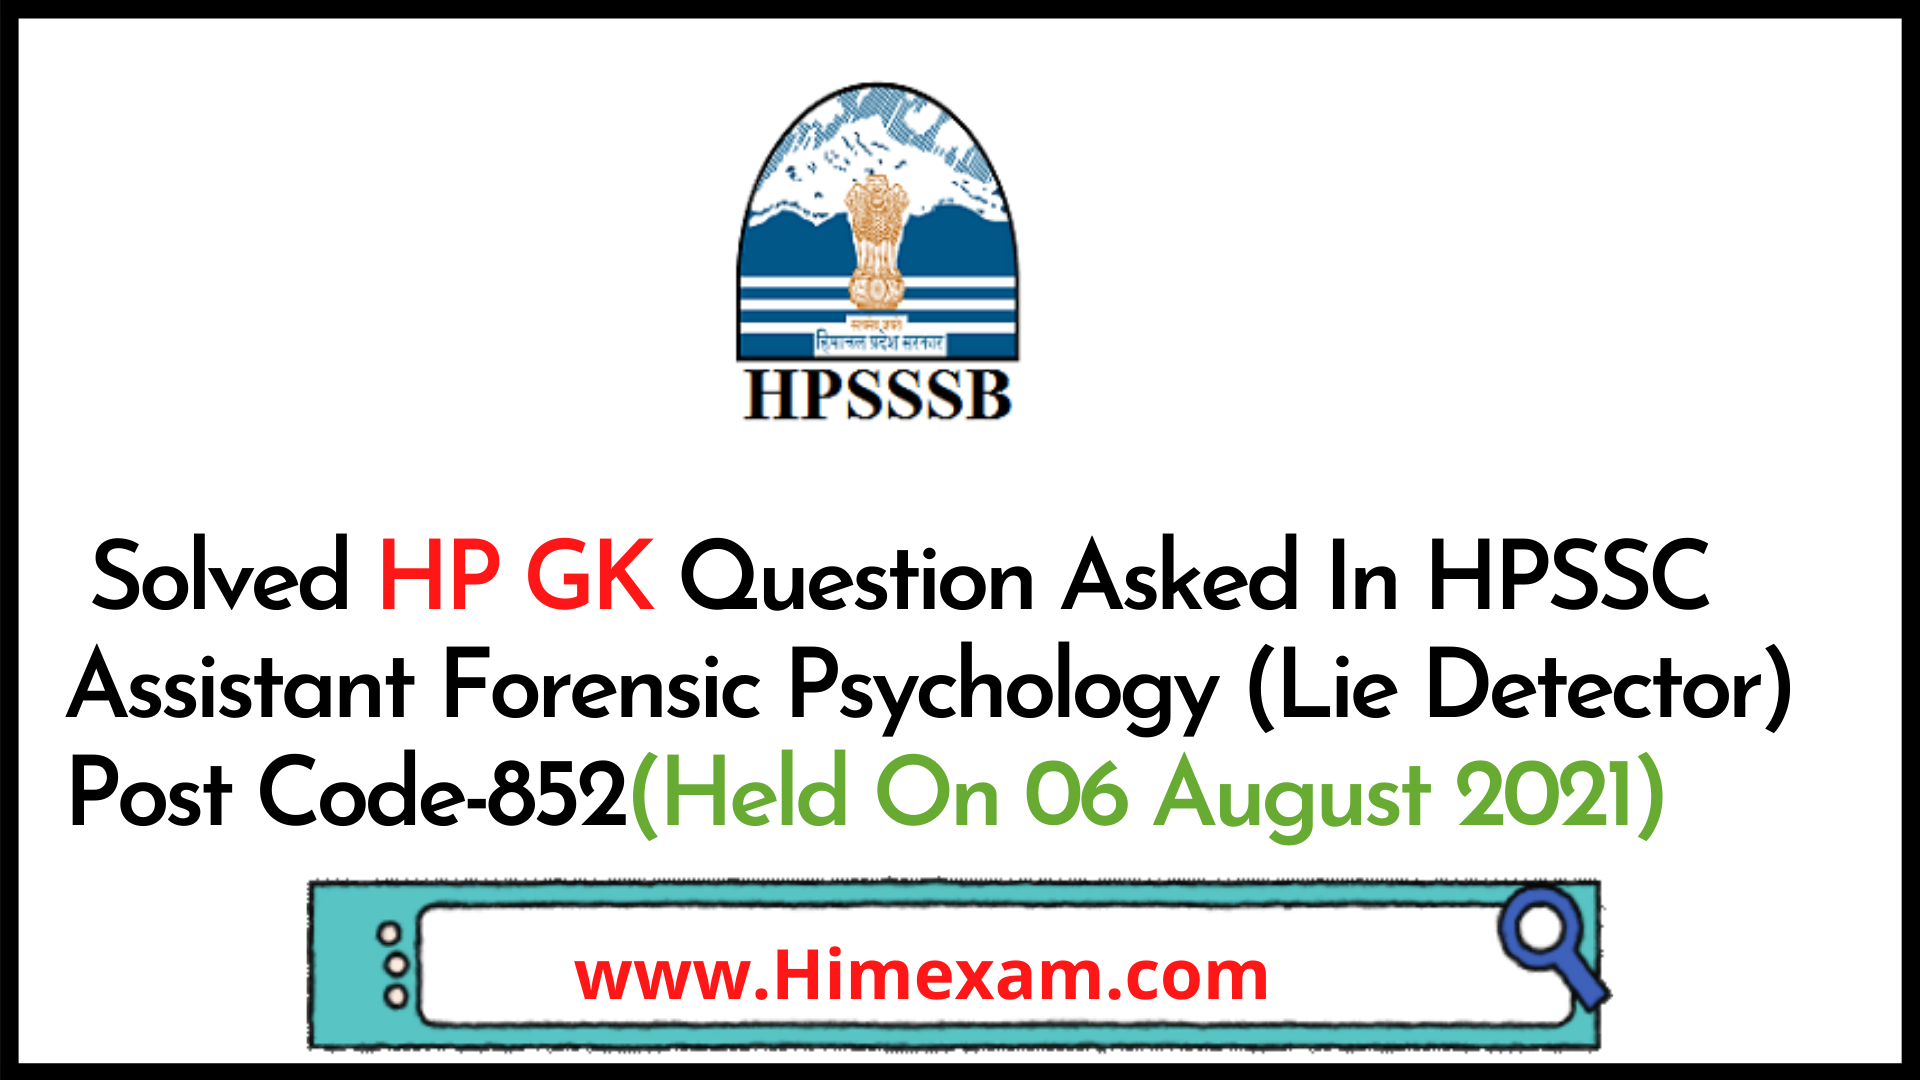 Solved HP GK Question Asked In HPSSC Assistant Forensic Psychology (Lie Detector) Post Code-852